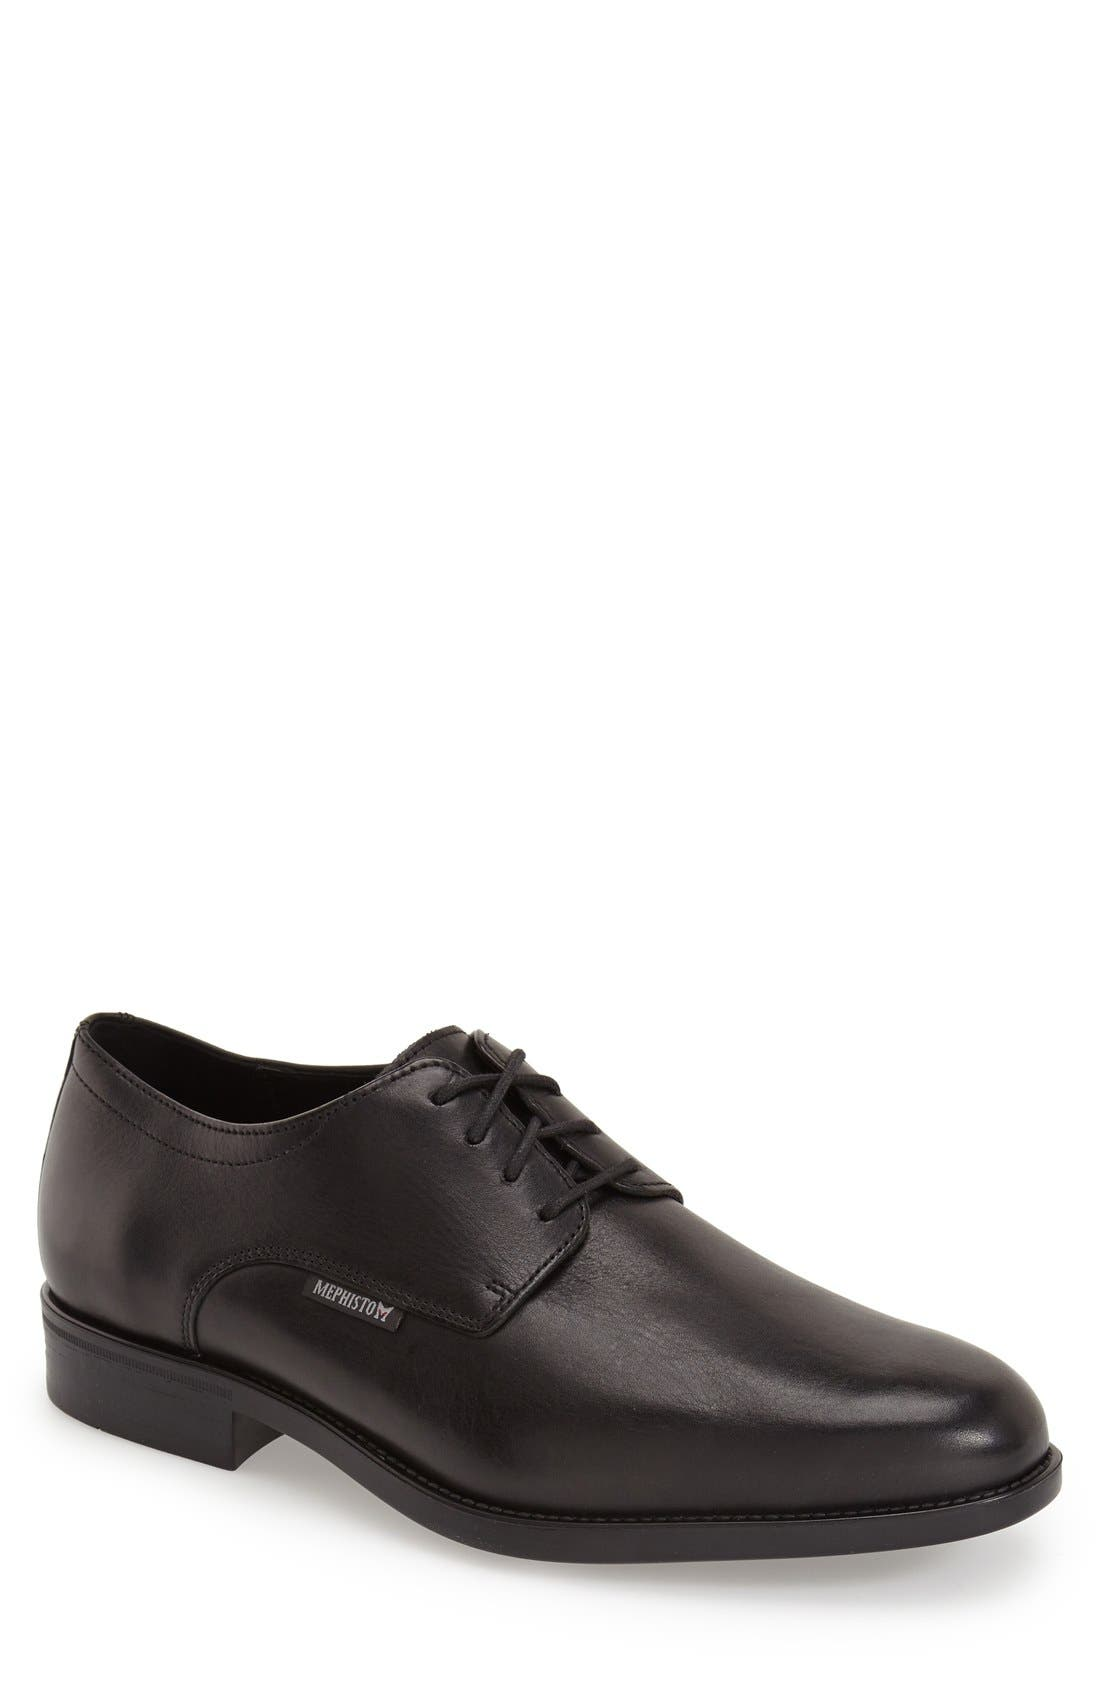 Alternate Image 1 Selected - Mephisto 'Cooper' Plain Toe Derby (Men)